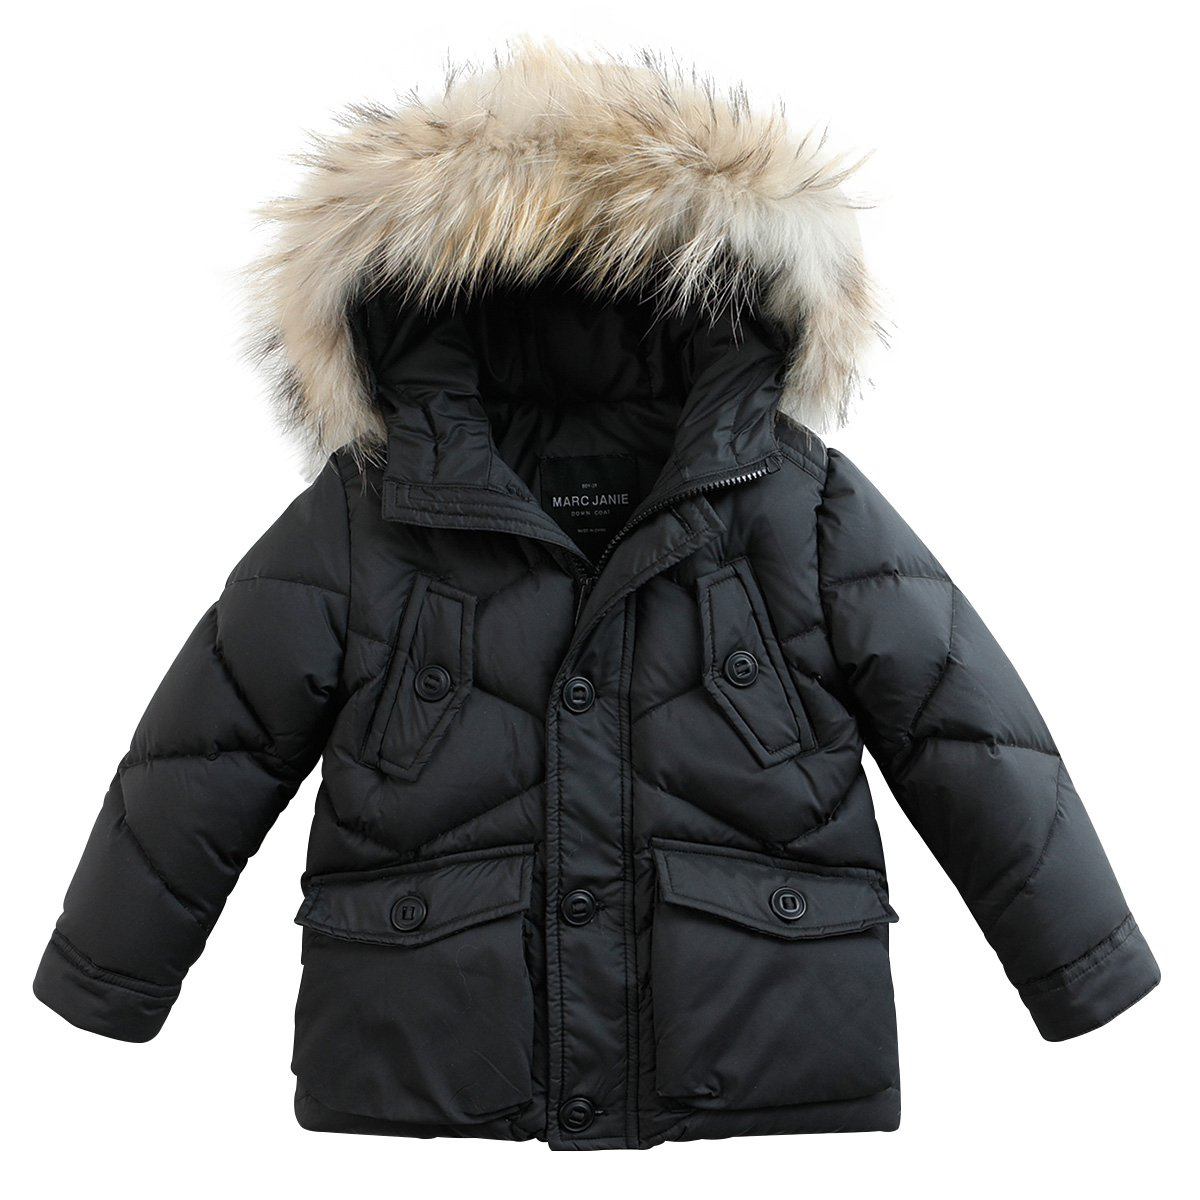 marc janie Baby Boys Kids' Lightweight Down Jacket With Raccoon Fur Collar Hood Puffer Winter Coat Black 3T